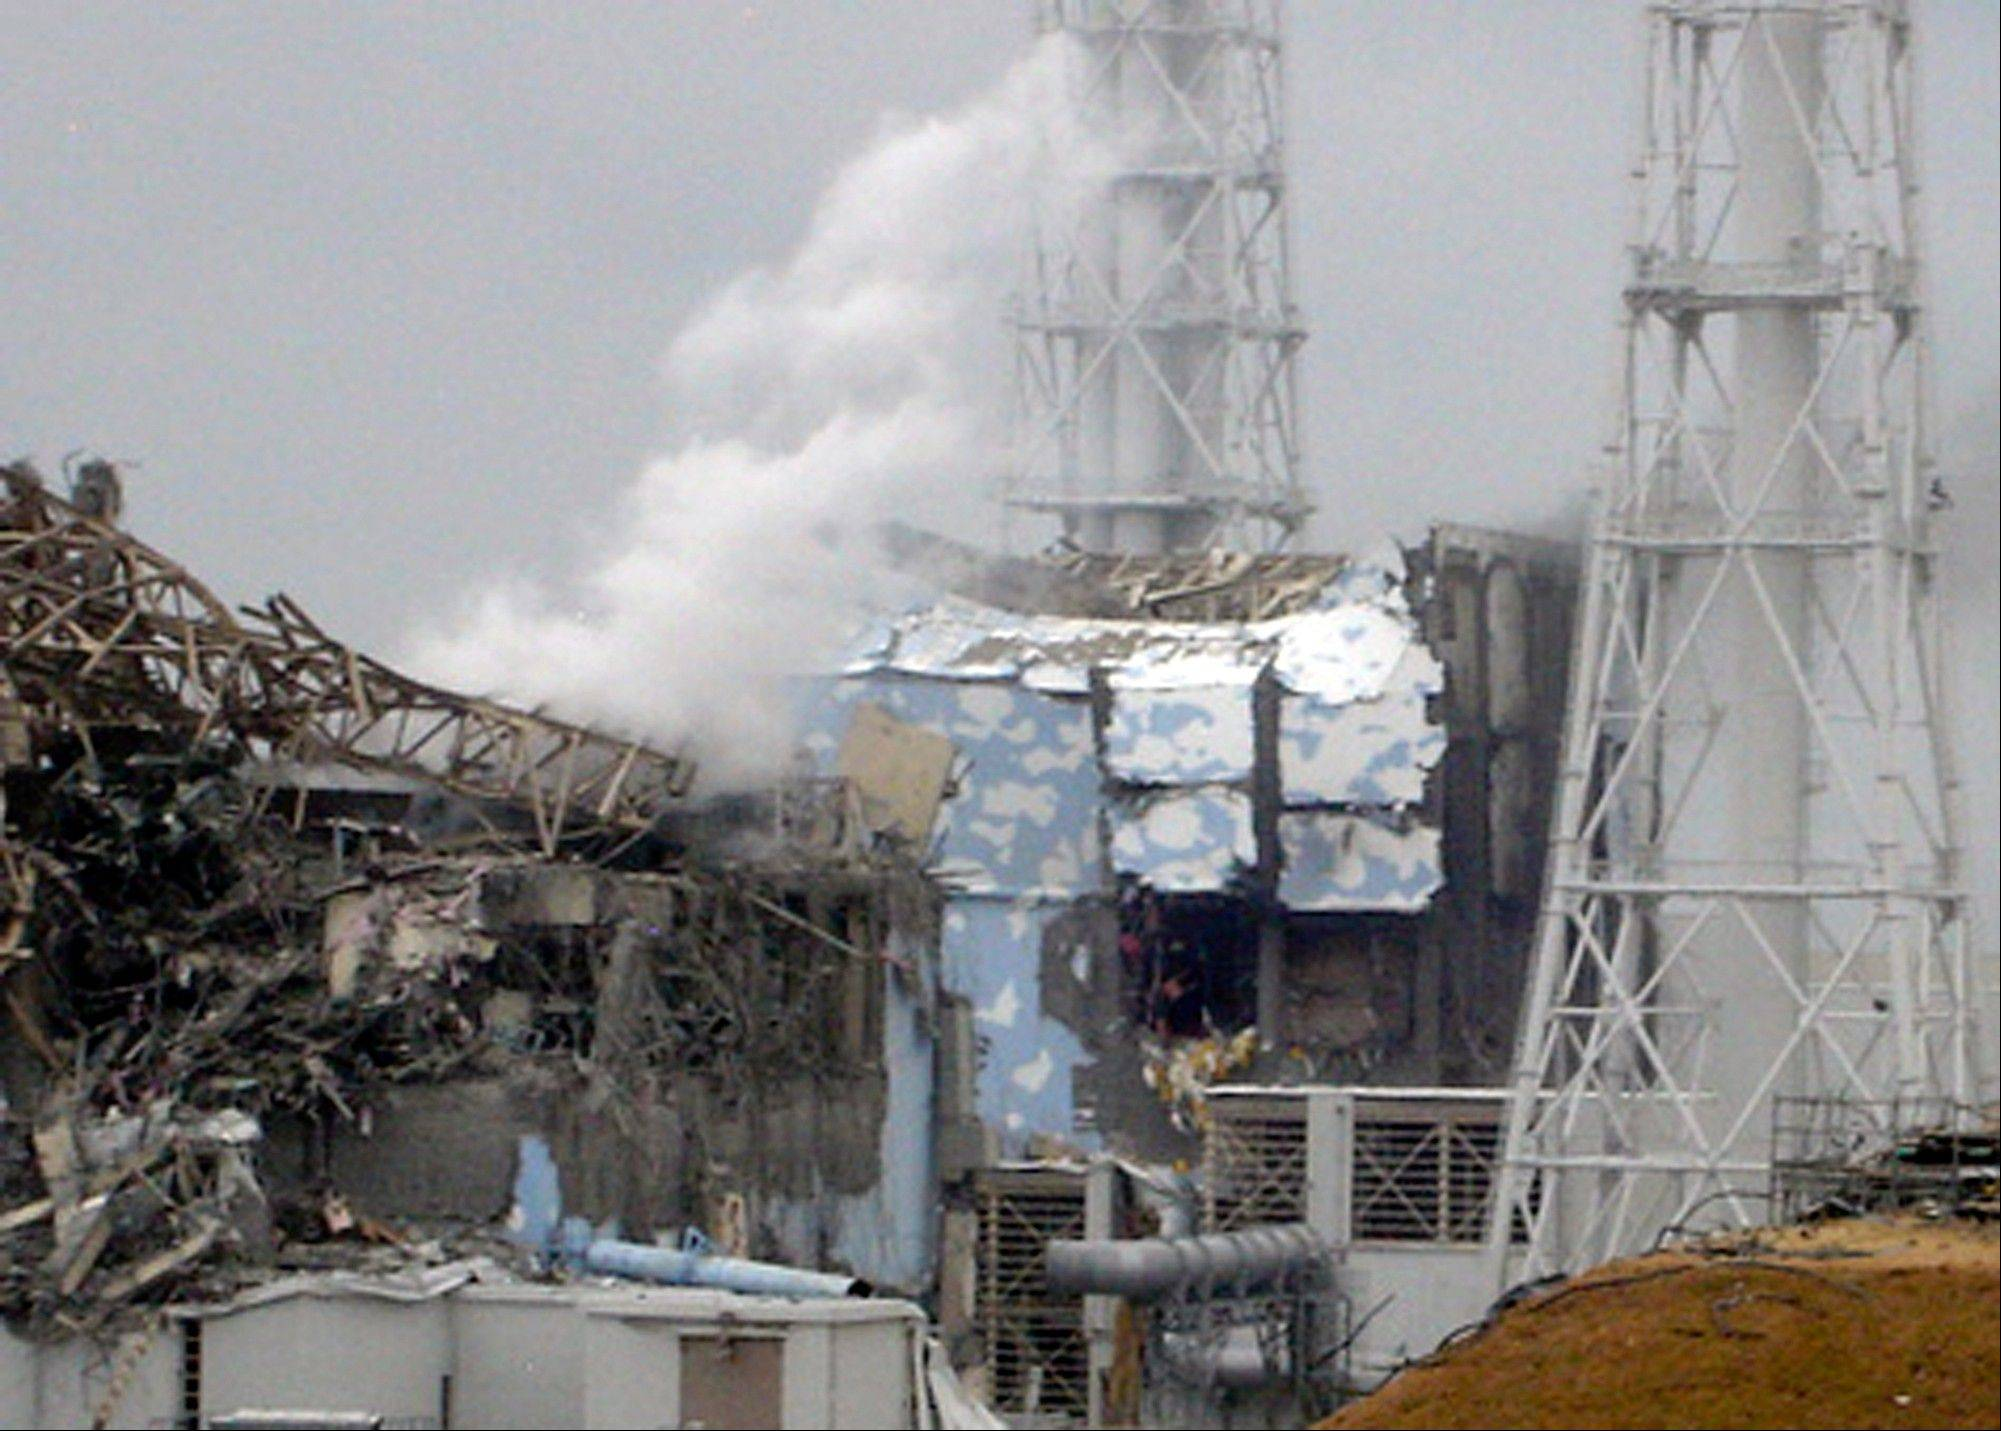 In this March 15, 2011, photo, smoke rises from the badly damaged Unit 3 reactor, left, next to the Unit 4 reactor covered by an outer wall at the Fukushima Dai-ichi nuclear complex in Okuma, northeastern Japan. The emergency command center at Japan's stricken nuclear plant shook violently when hydrogen exploded at Unit 3 during the crisis last year.